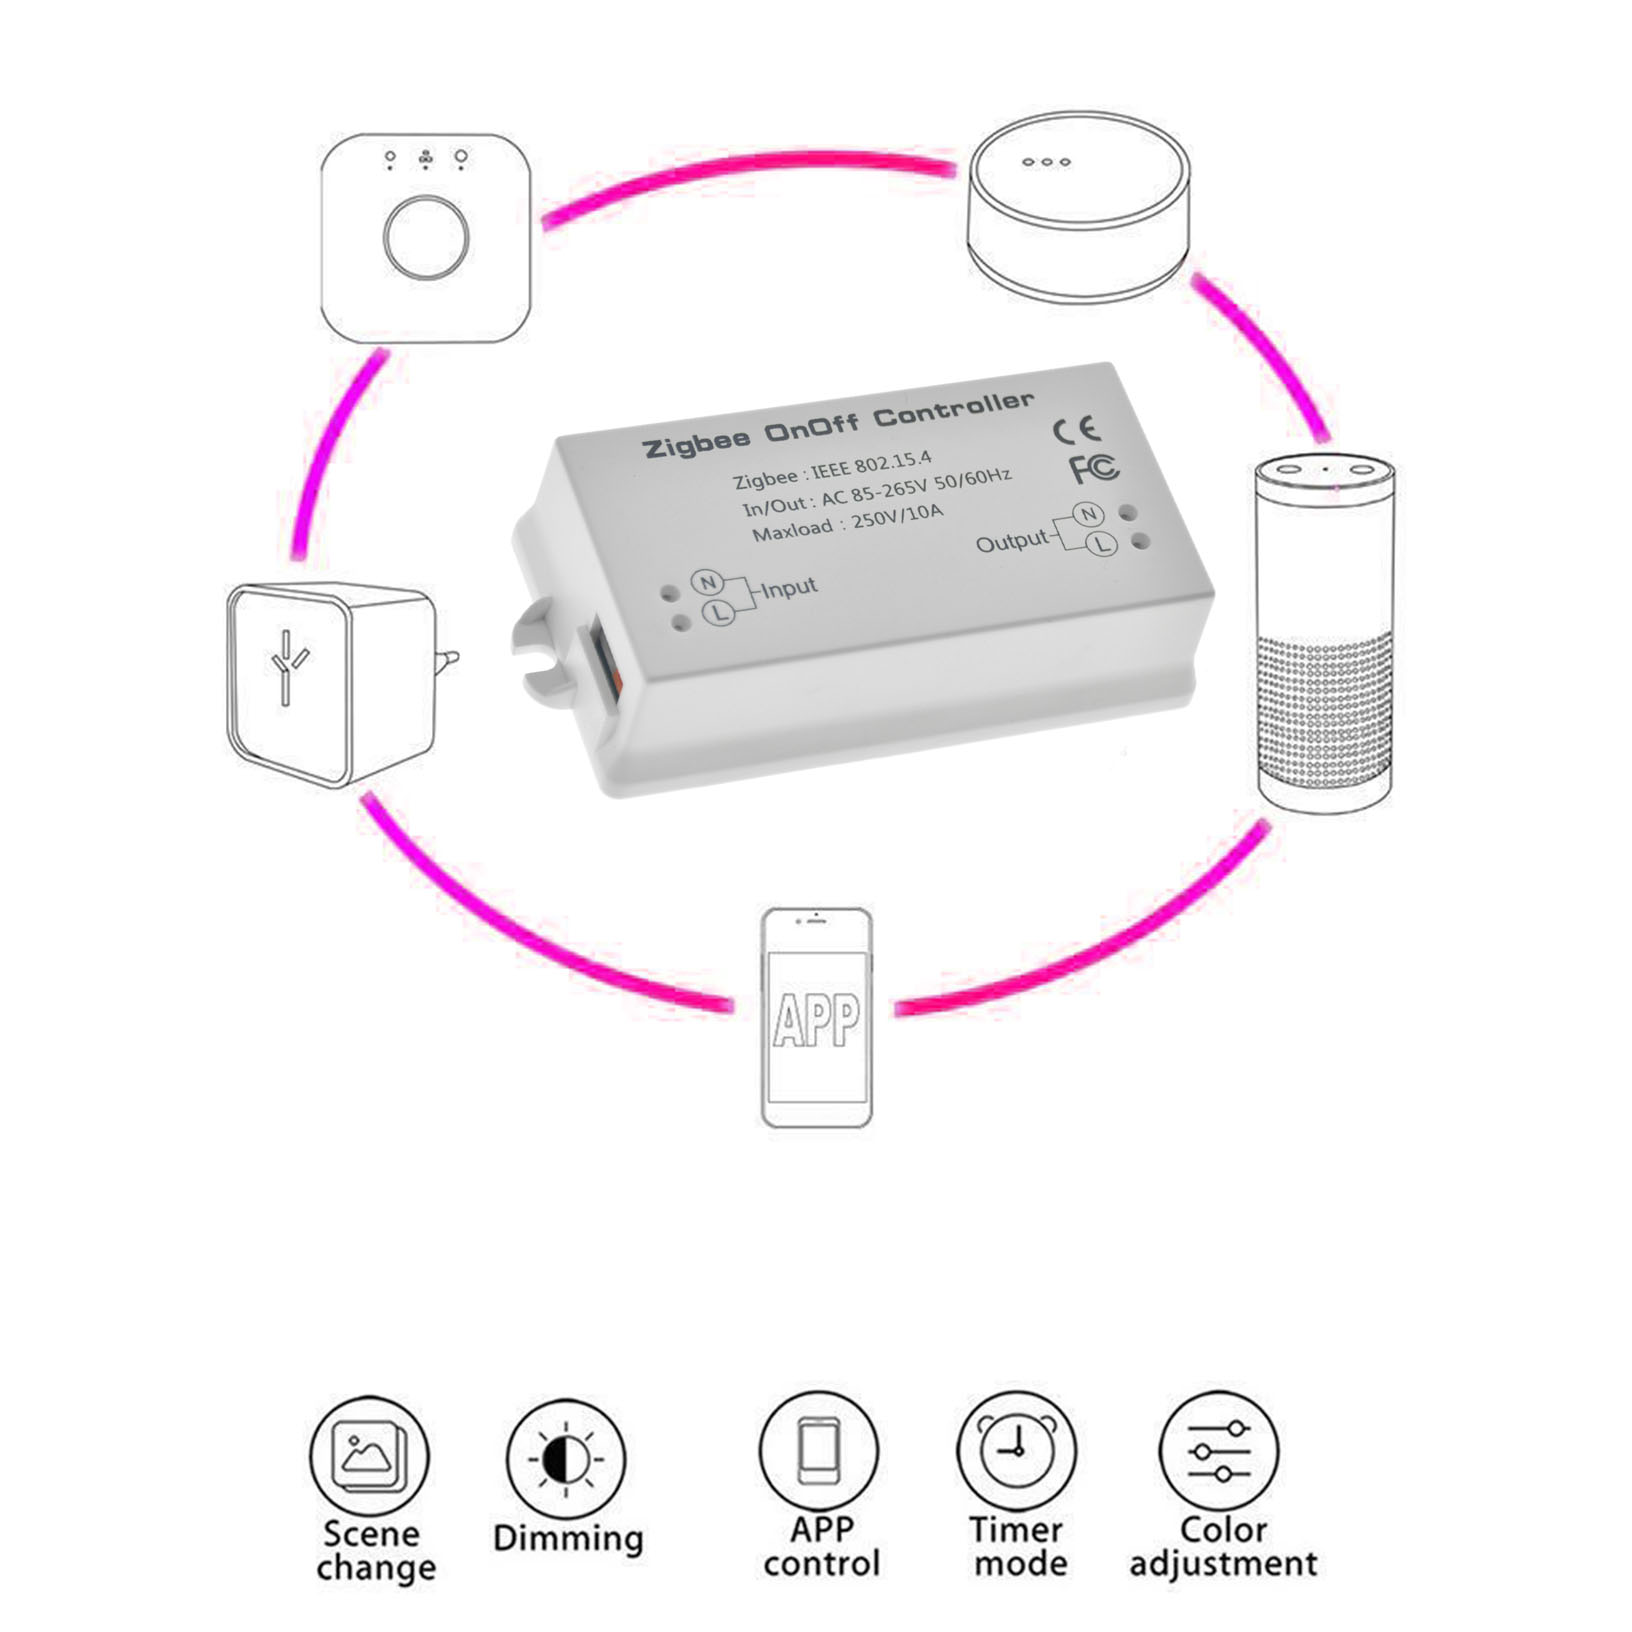 Details about Zigbee OnOff Controller Channel Switch For Amazon Alexa  Samsung SmartThings App